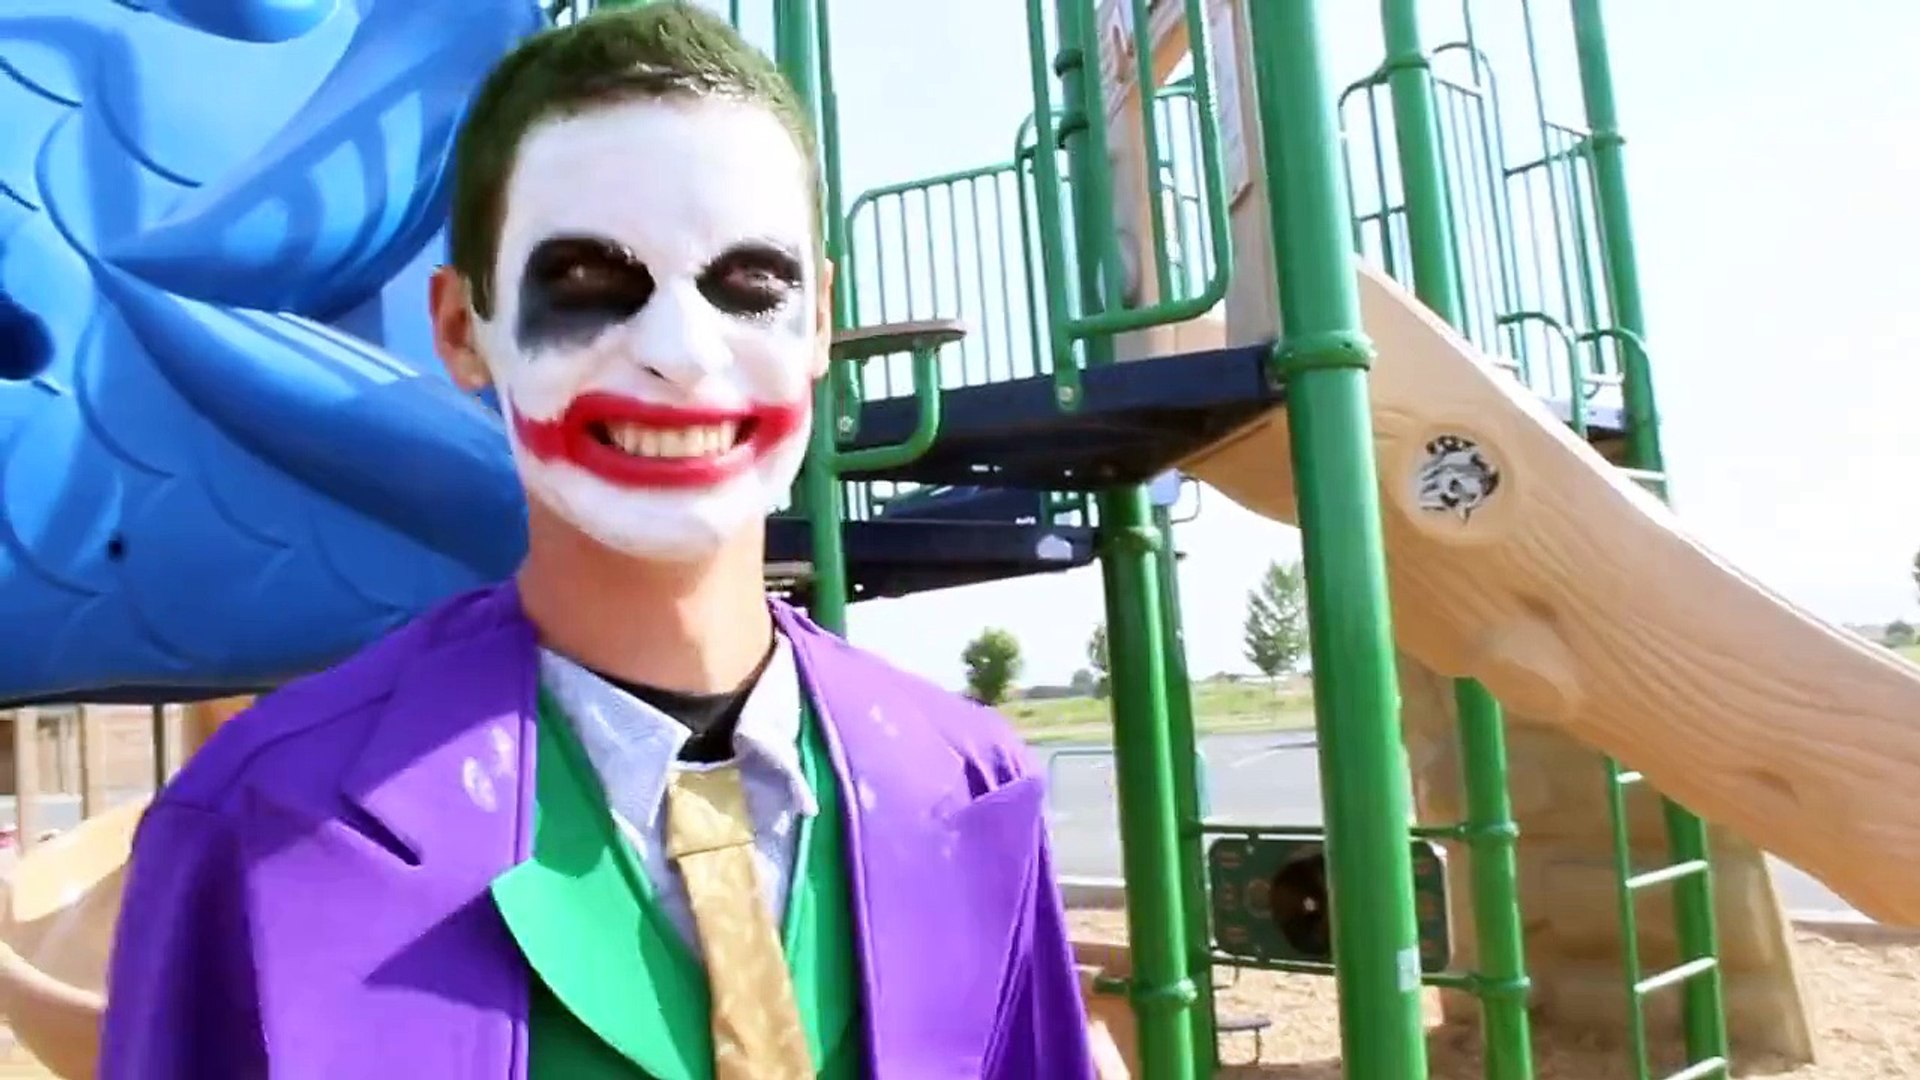 Spiderman Vs Joker Real Life Superhero Battle Death Match Video Dailymotion